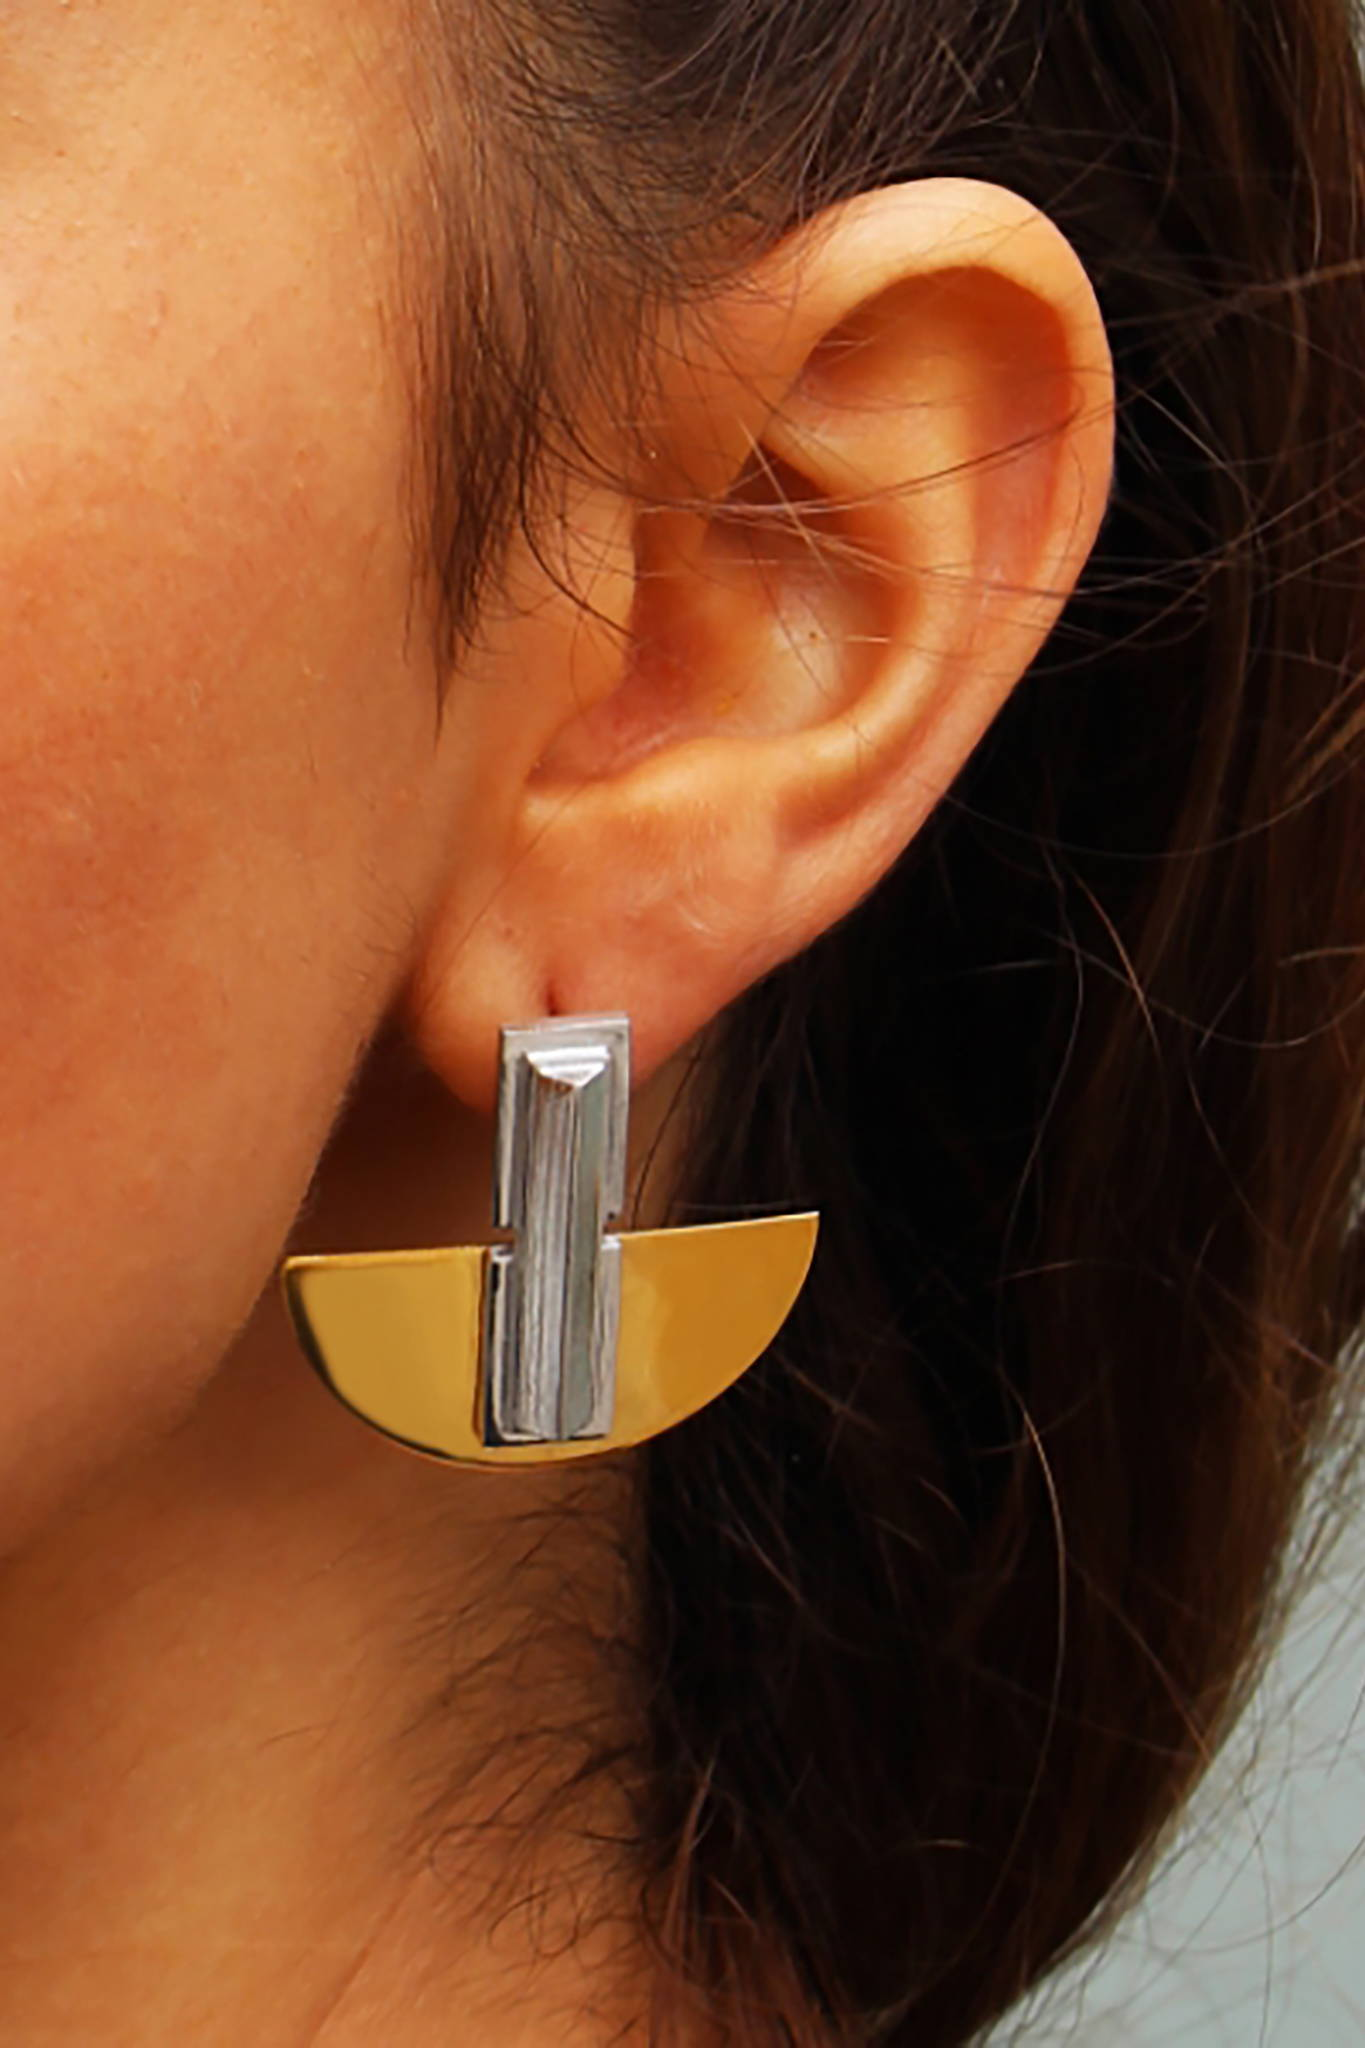 CLASSIC STATEMENT JEWELRY Sophisticated contemporary metallic accessories